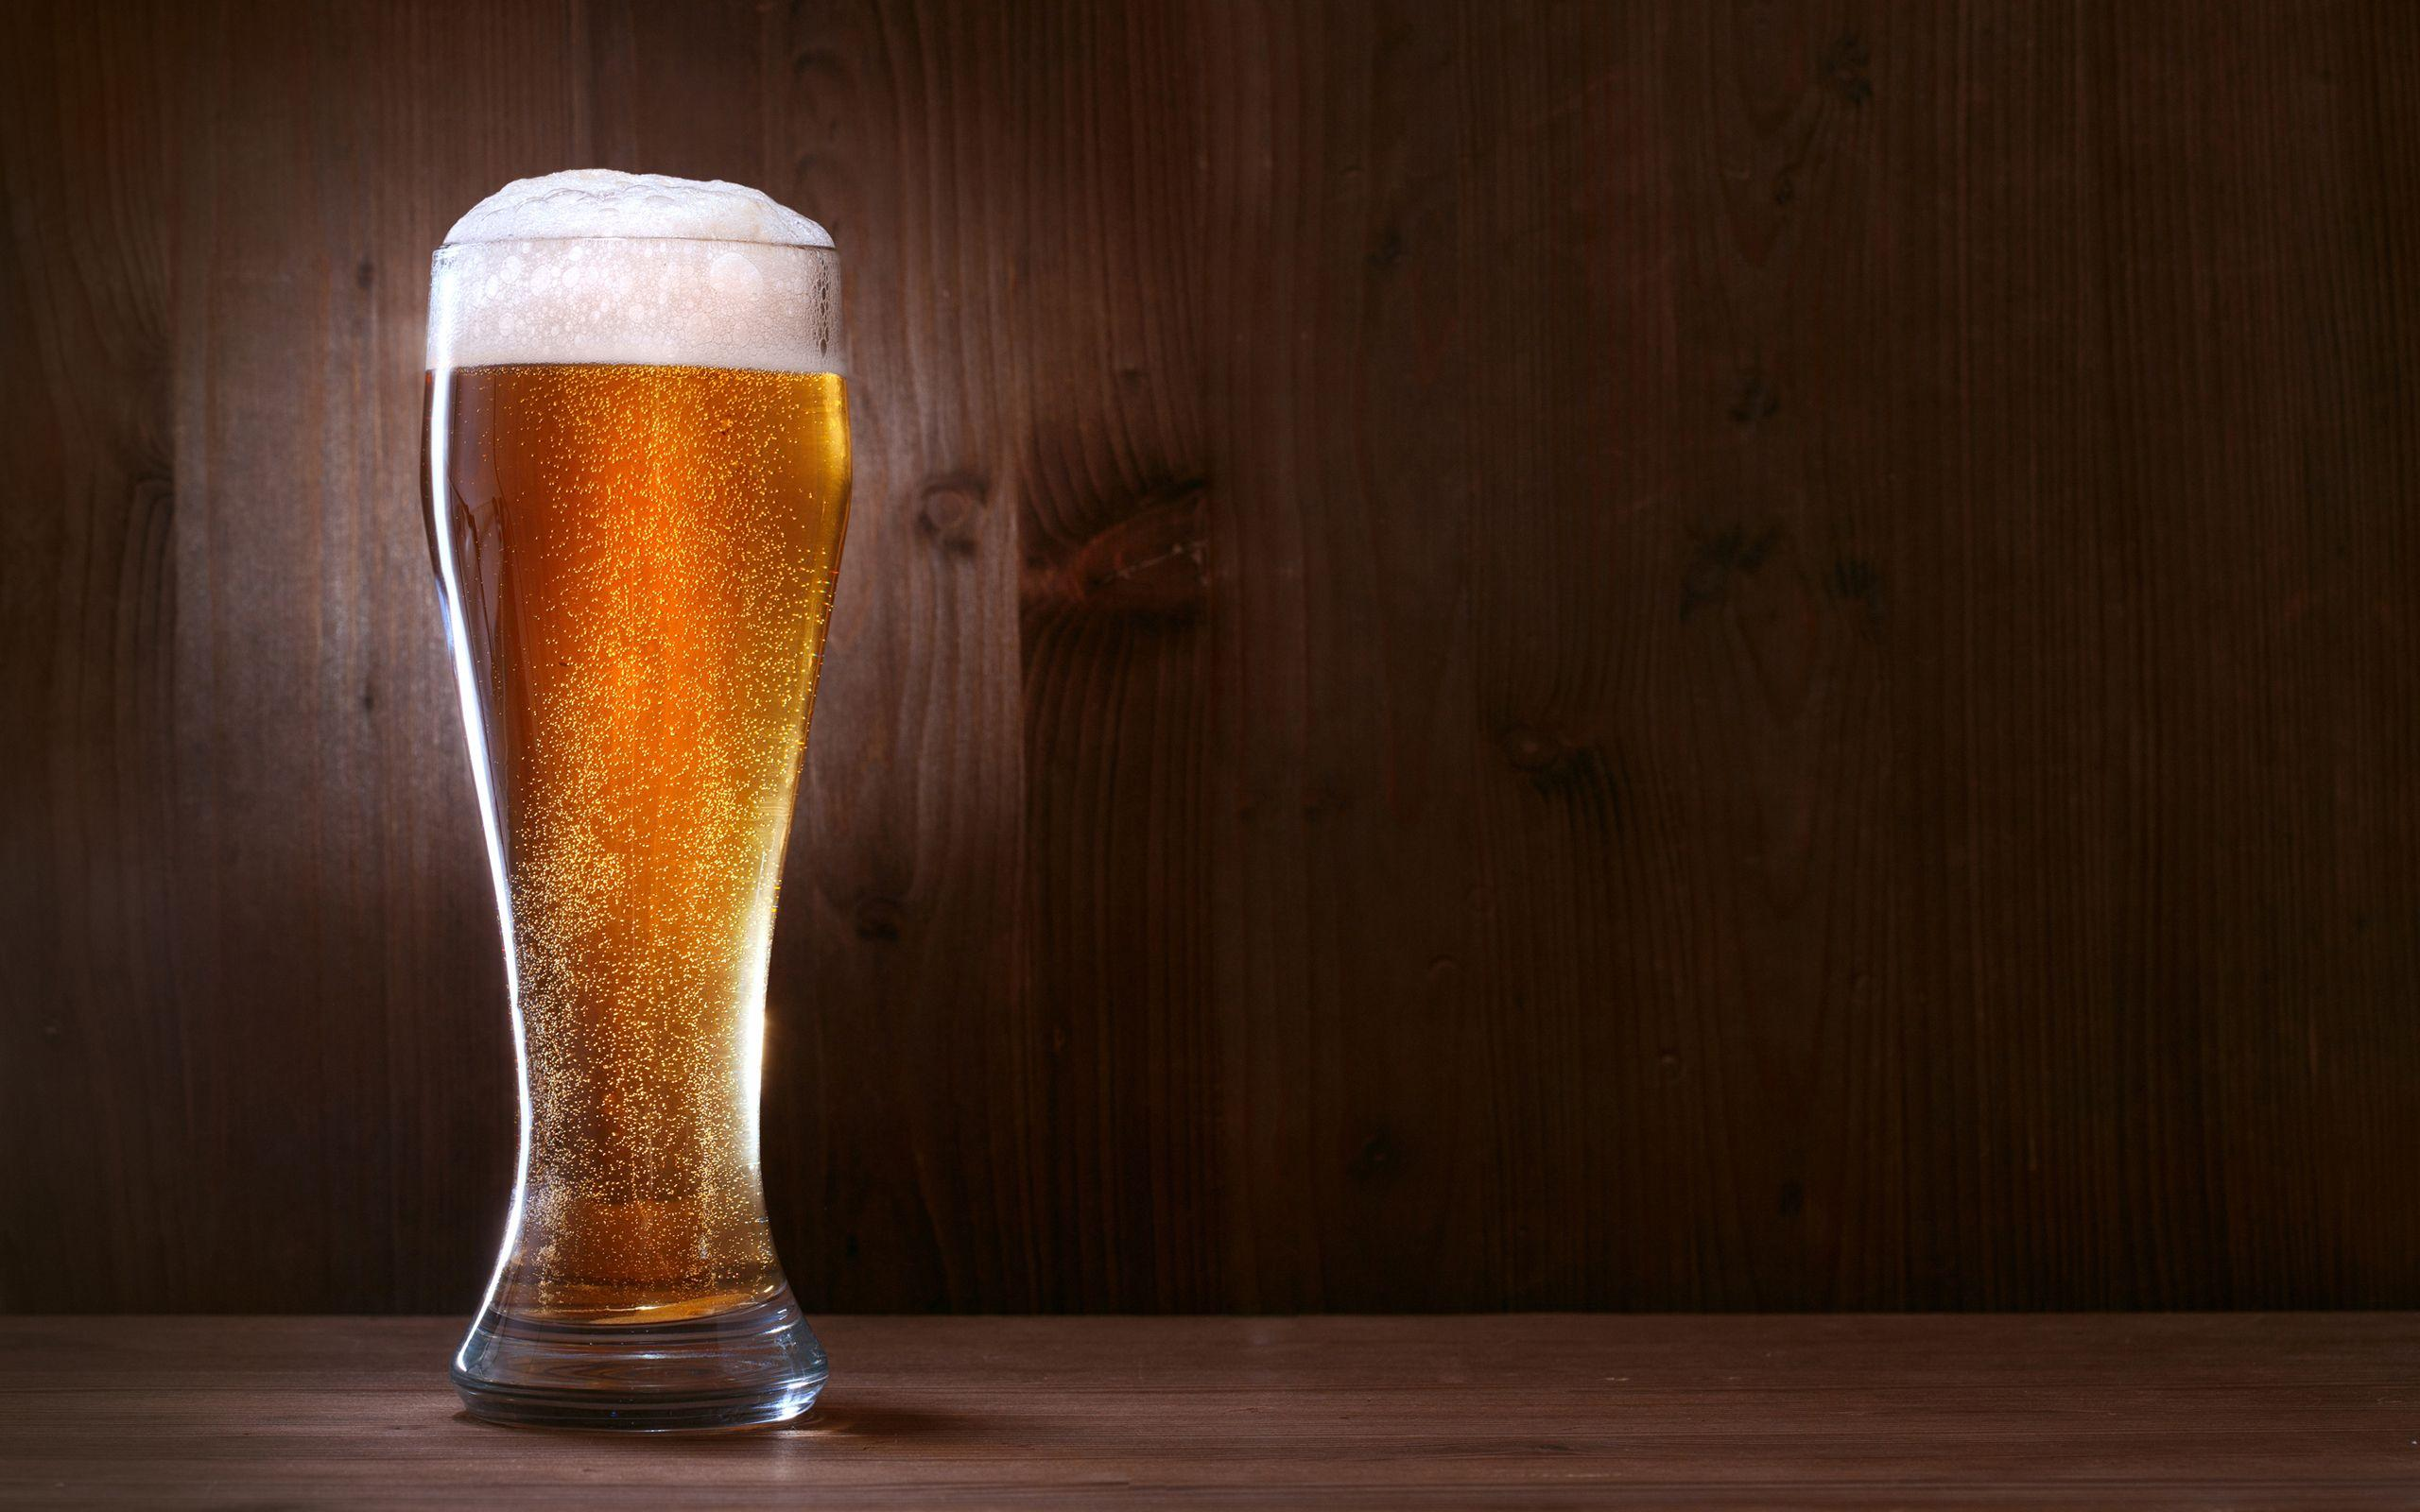 Awesome Beer Wallpaper design ideas